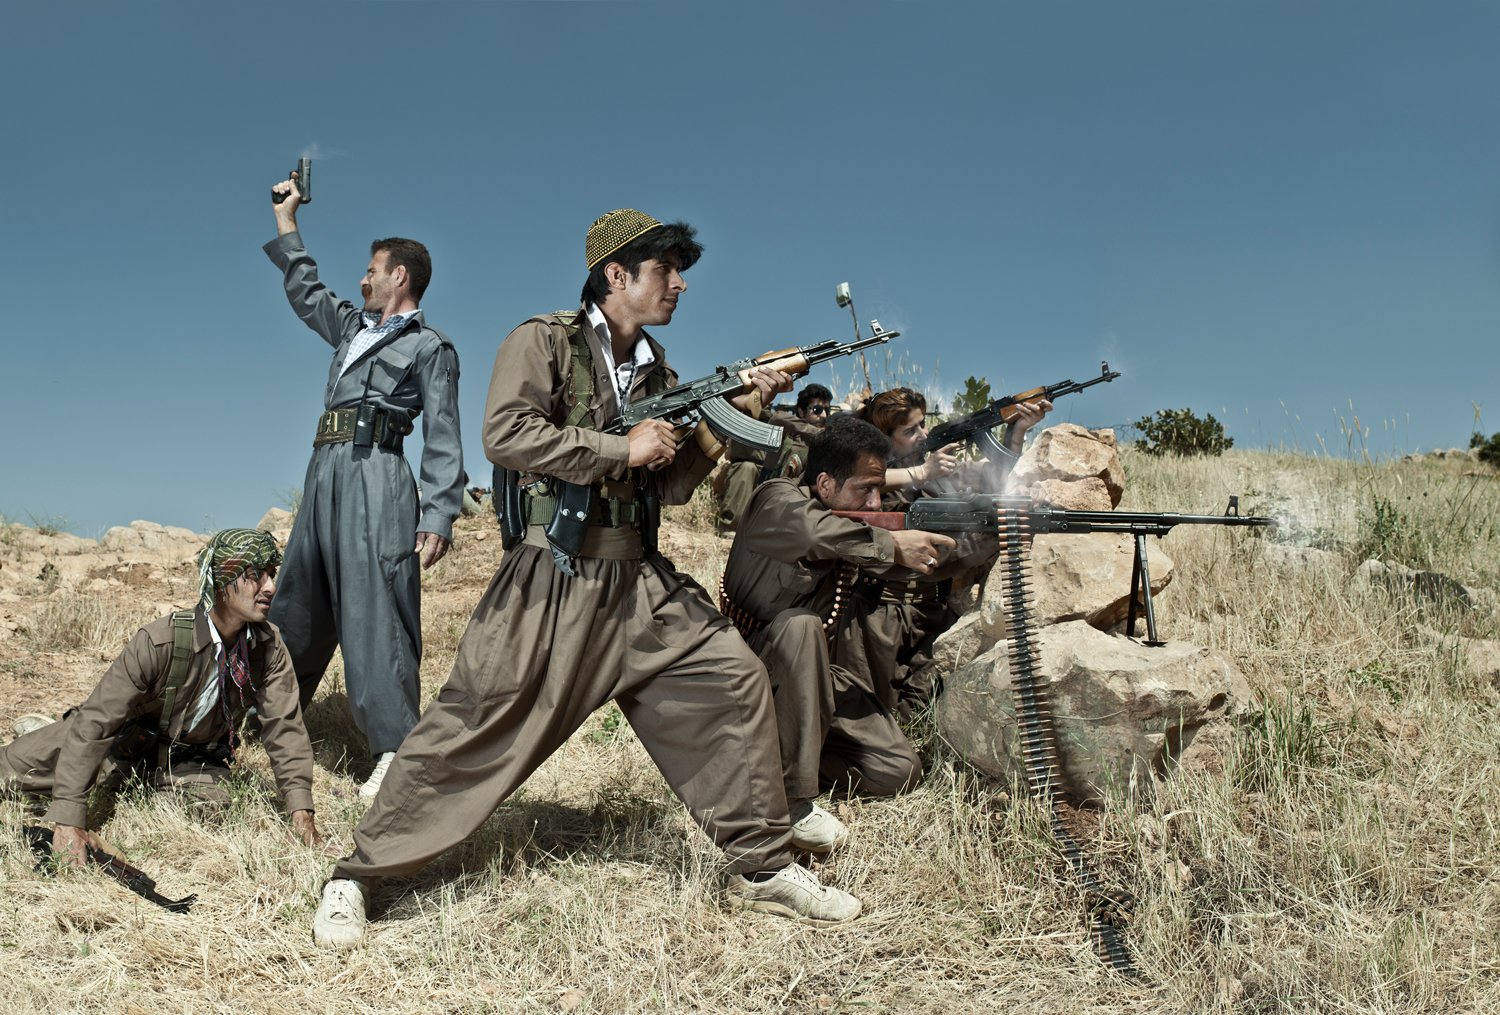 Emeric Lhuisset. Theater of war. photographs with a group of Iranien Kurdish guerrilla. Lambda Durst. 120 x 177cm. Iraq. 2012.jpg